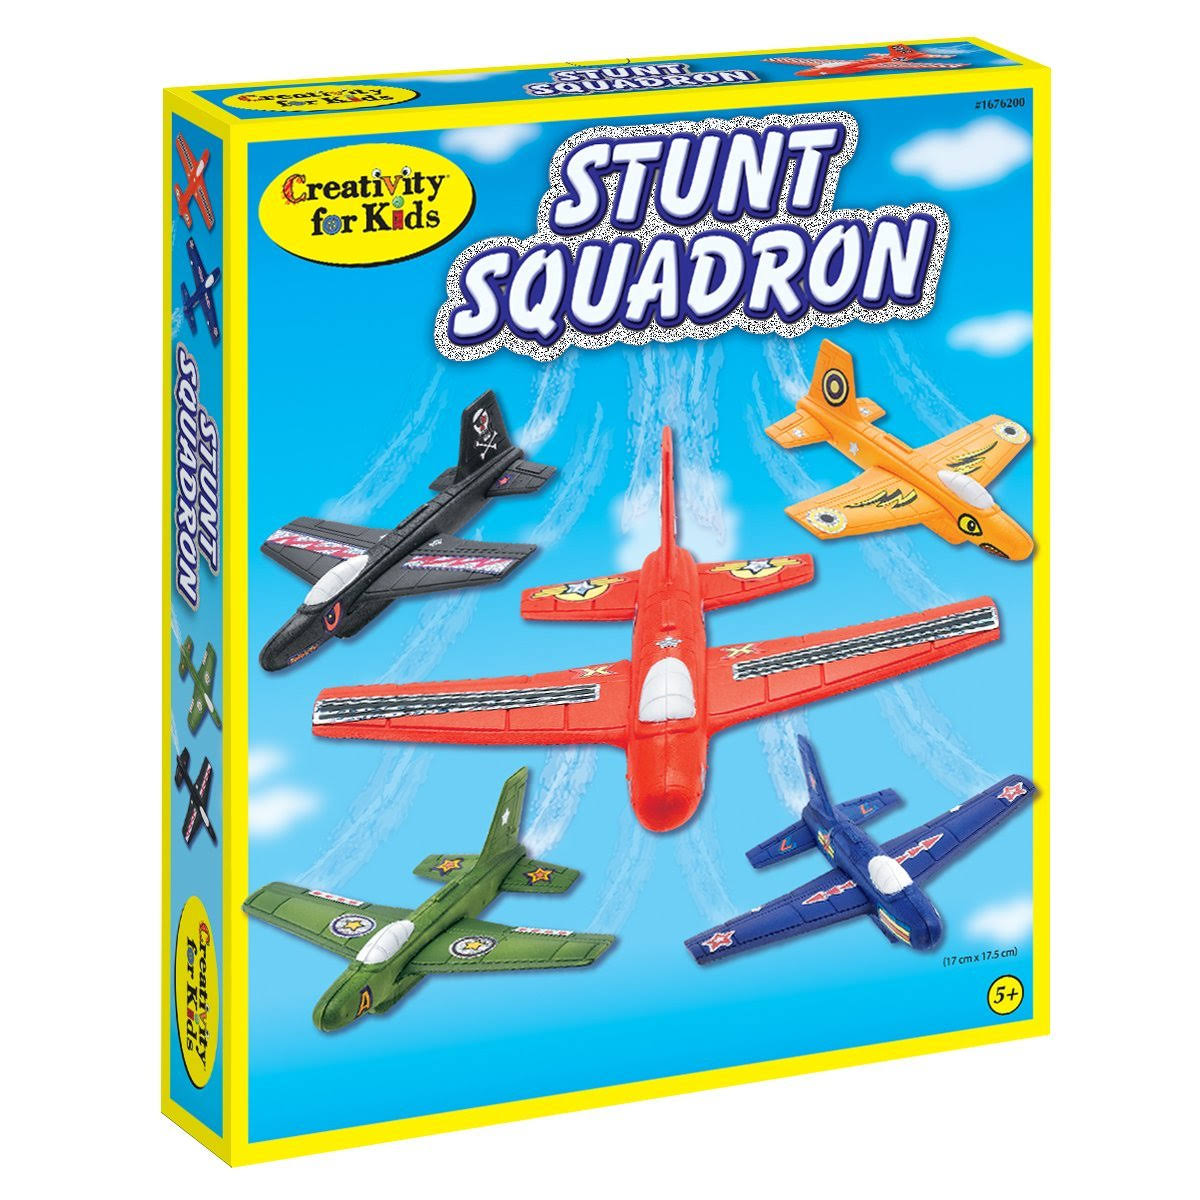 Creativity for Kids Stunt Squadron